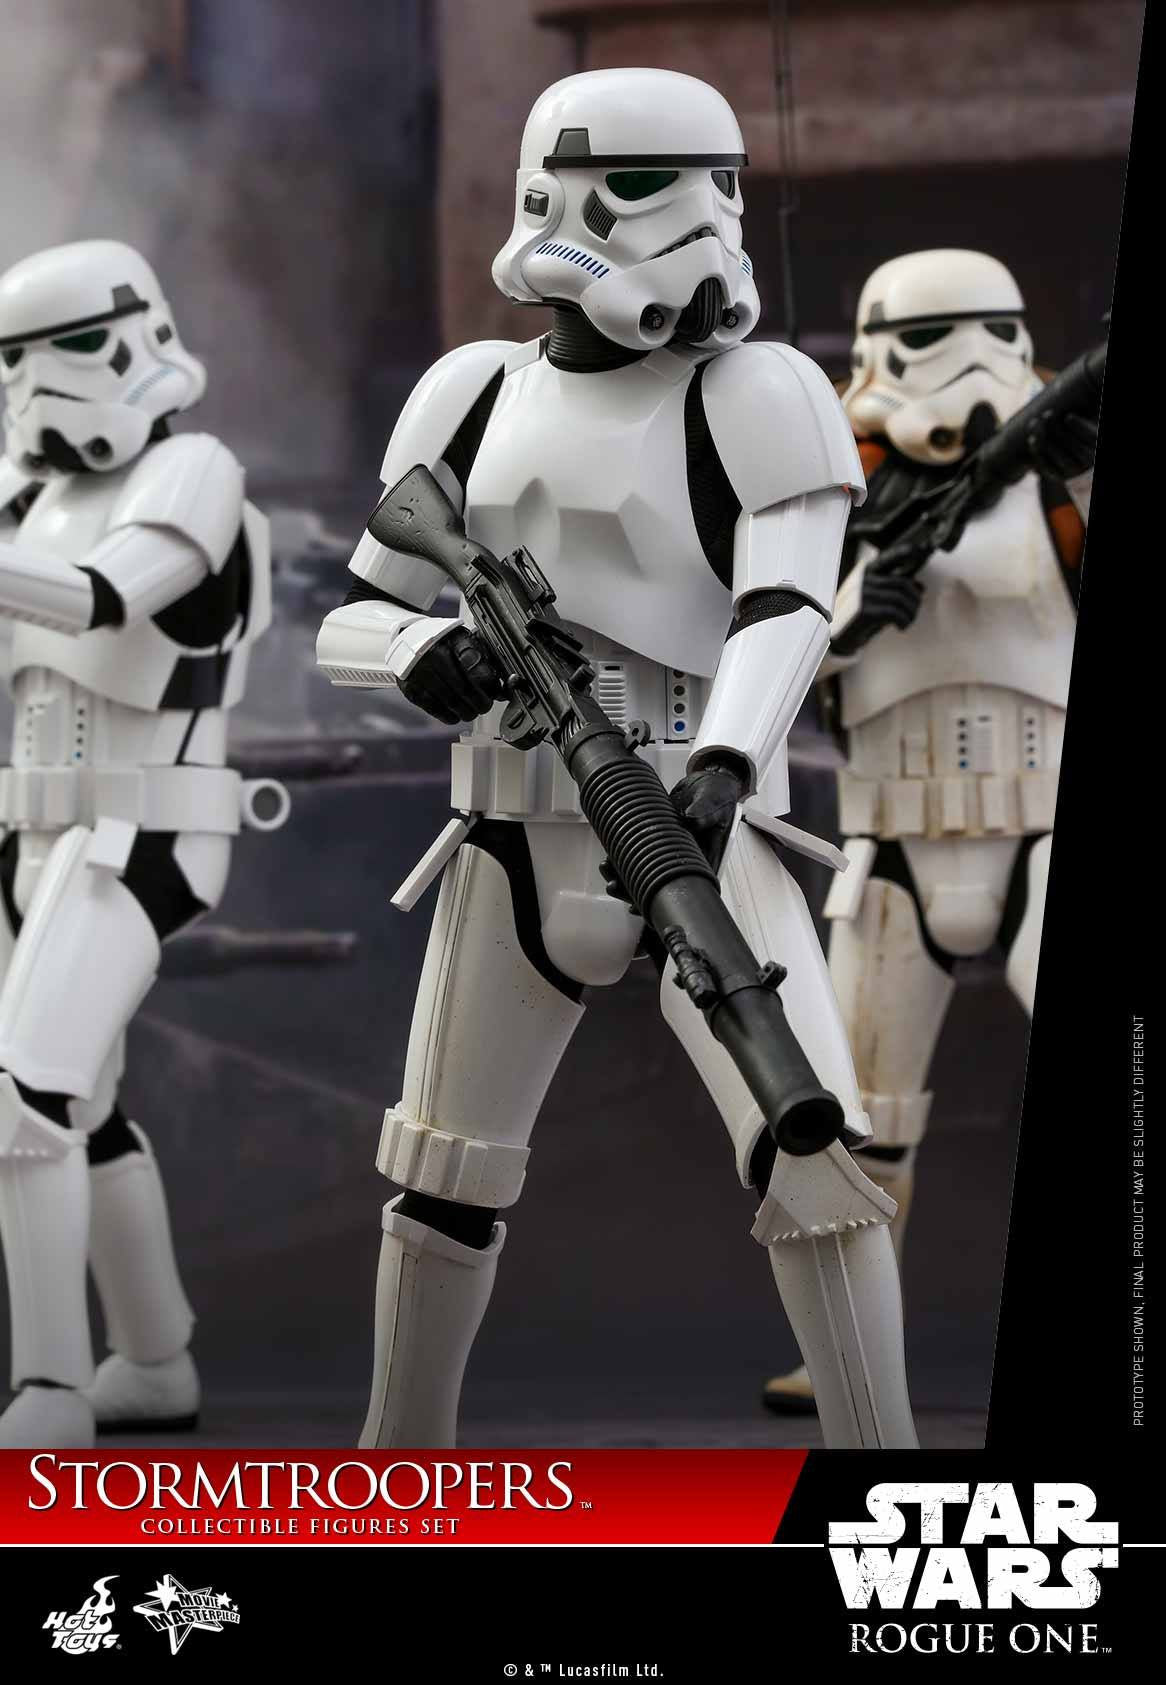 Hot Toys - MMS394 - Rogue One: A Star Wars Story - Stormtroopers Set - Marvelous Toys - 6